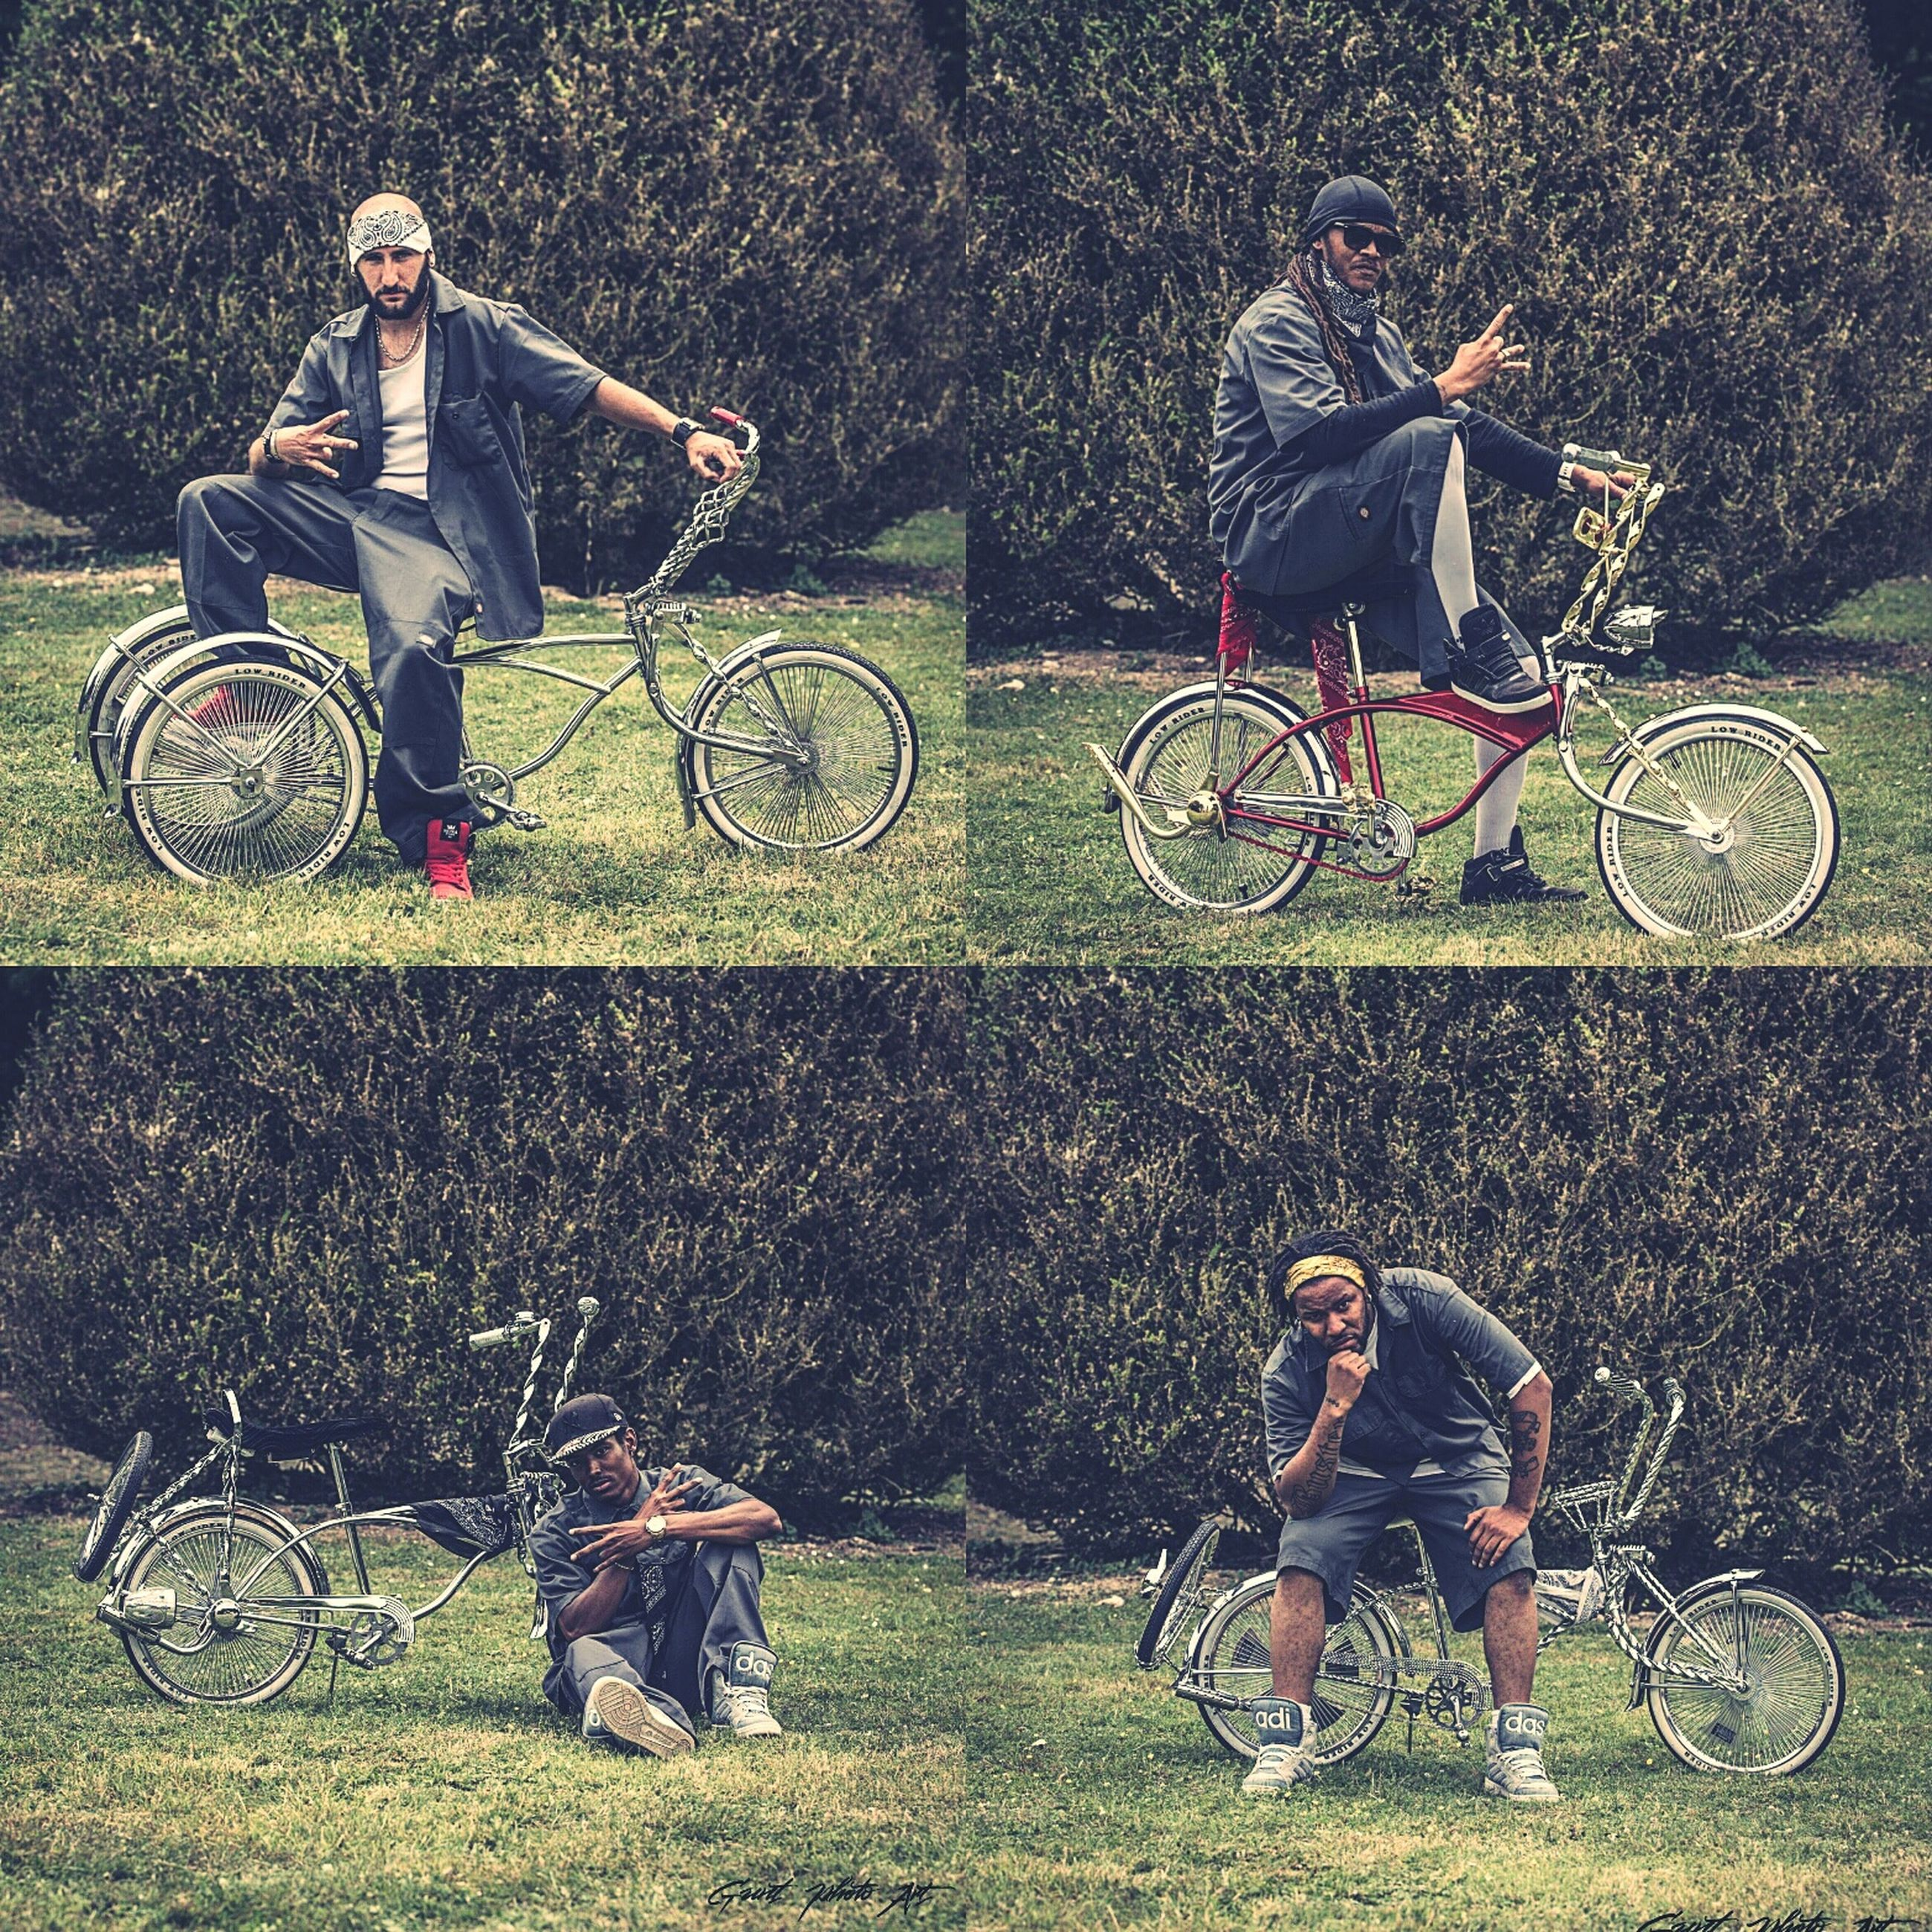 bicycle, lifestyles, men, land vehicle, leisure activity, transportation, mode of transport, riding, grass, togetherness, field, motorcycle, cycling, casual clothing, boys, full length, bonding